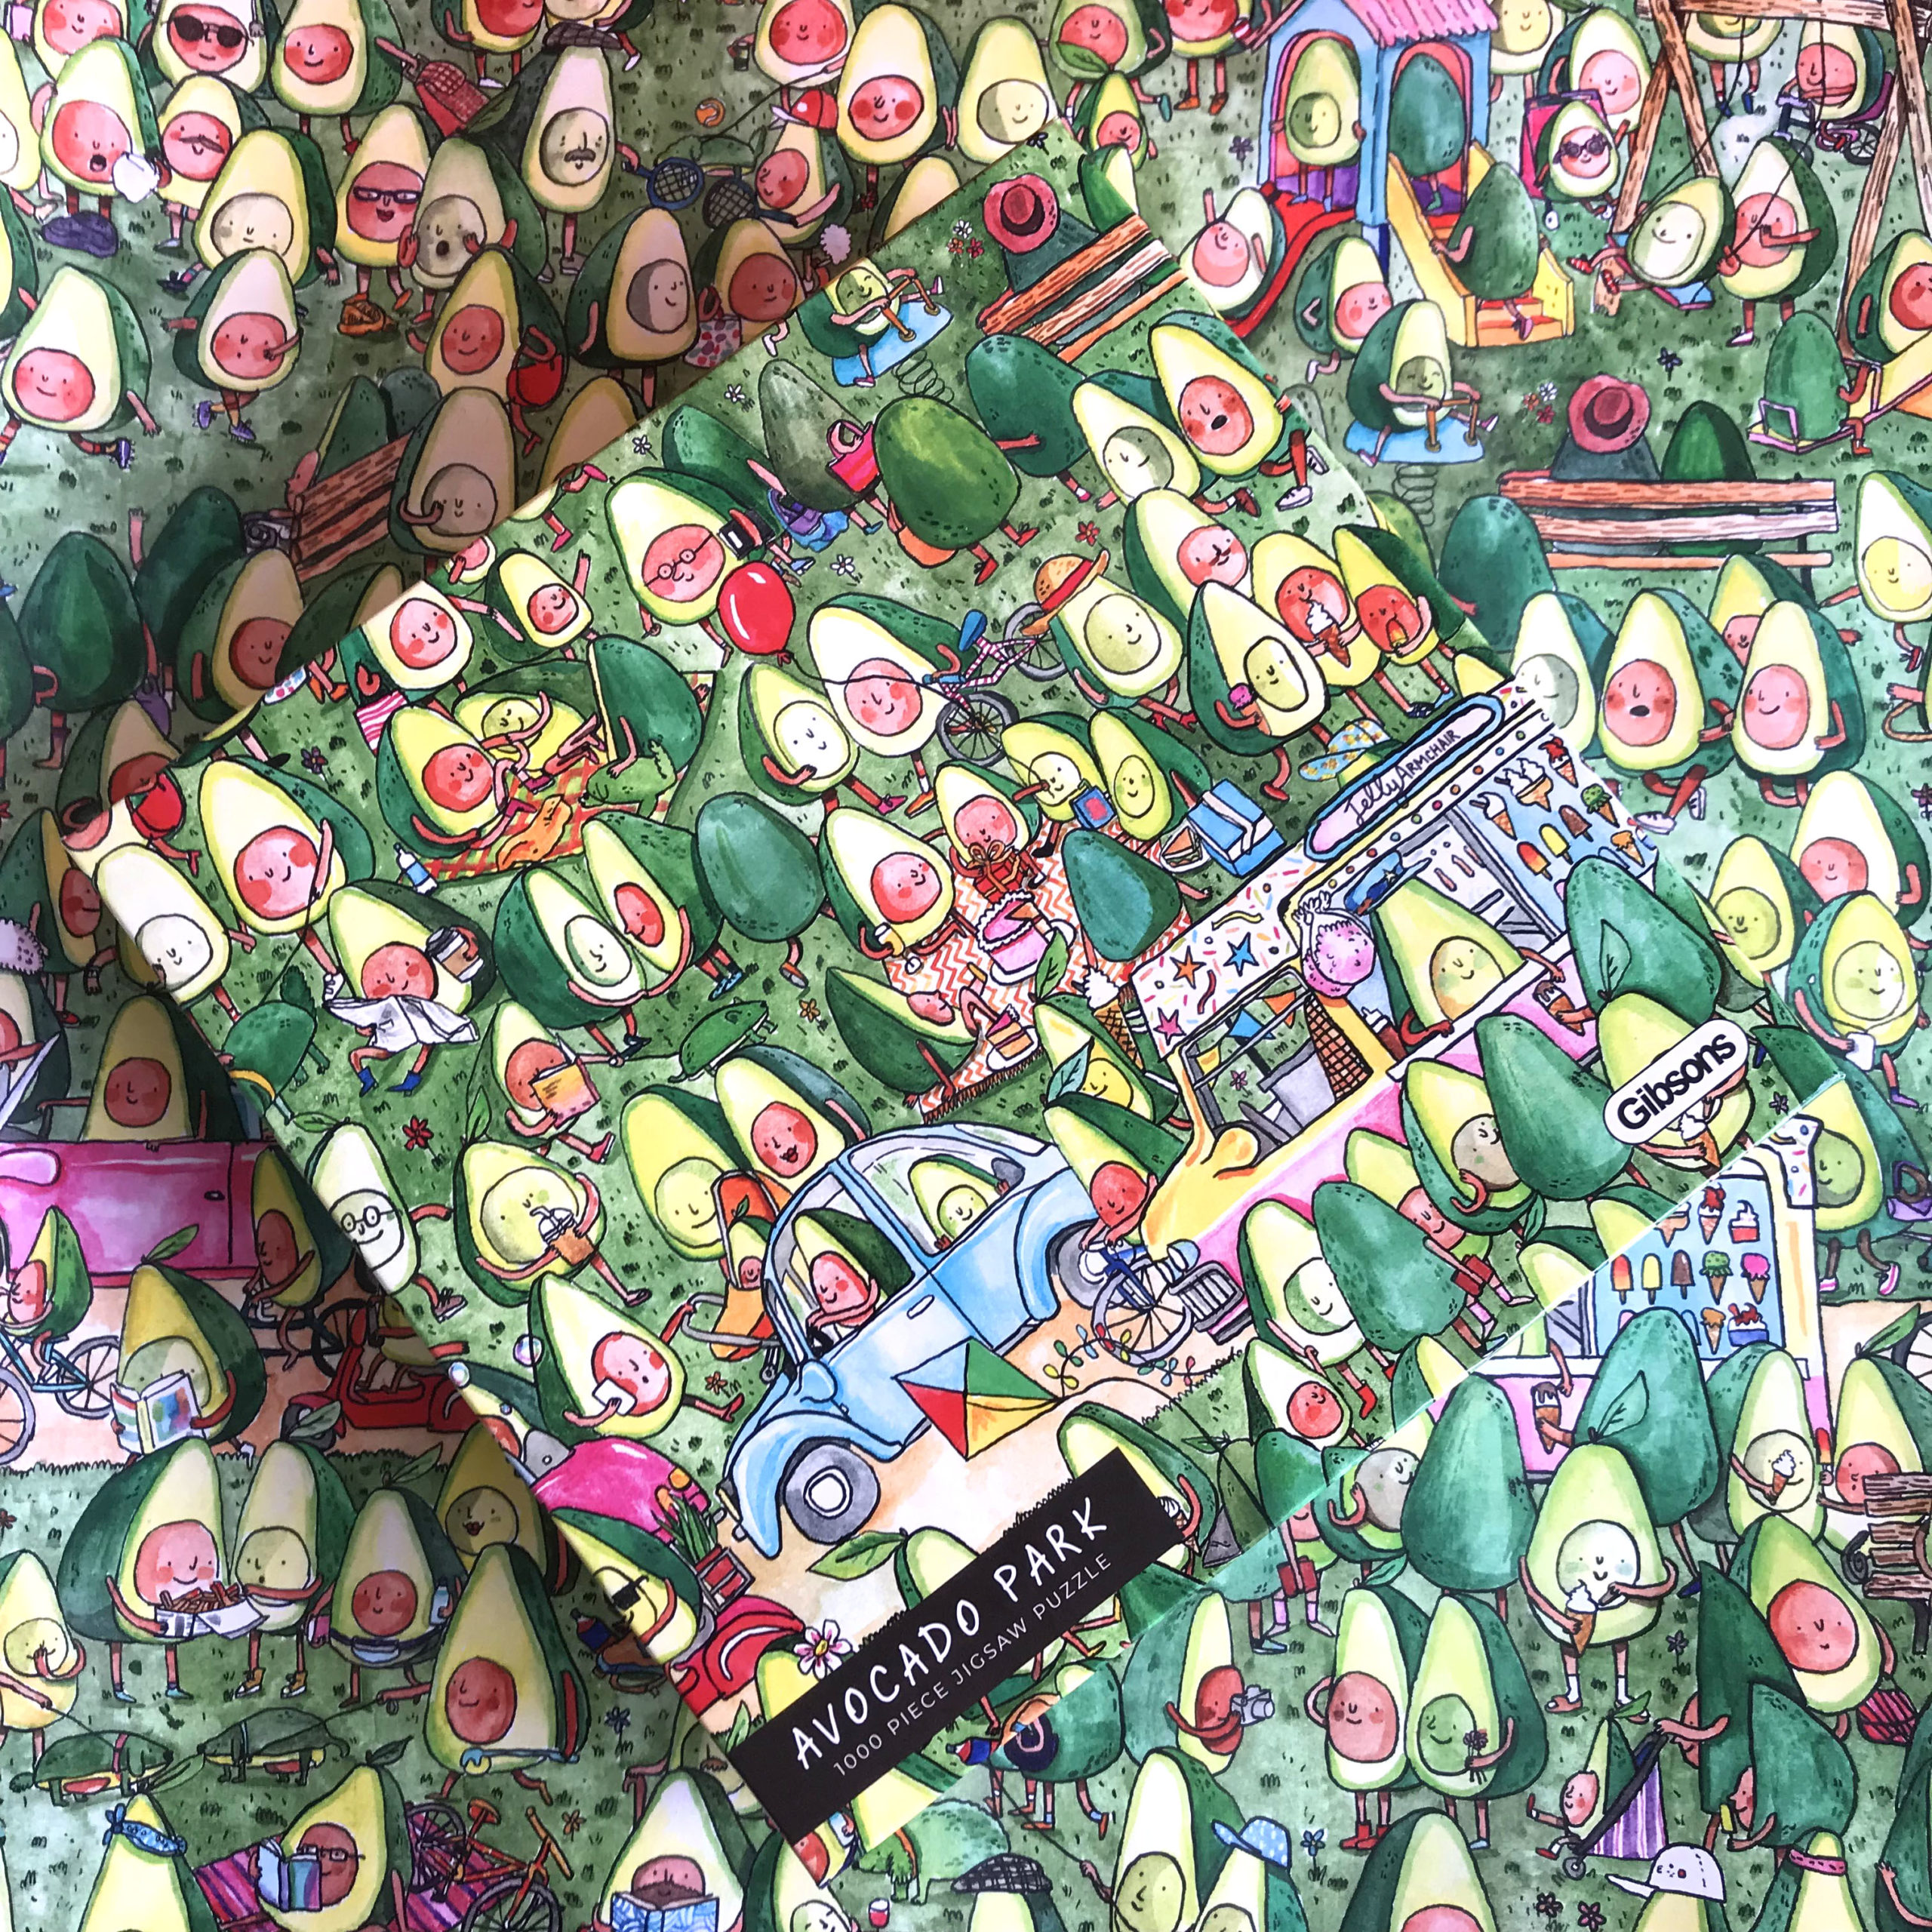 AVocado-park-jigsaw-on-paper-2-scaled